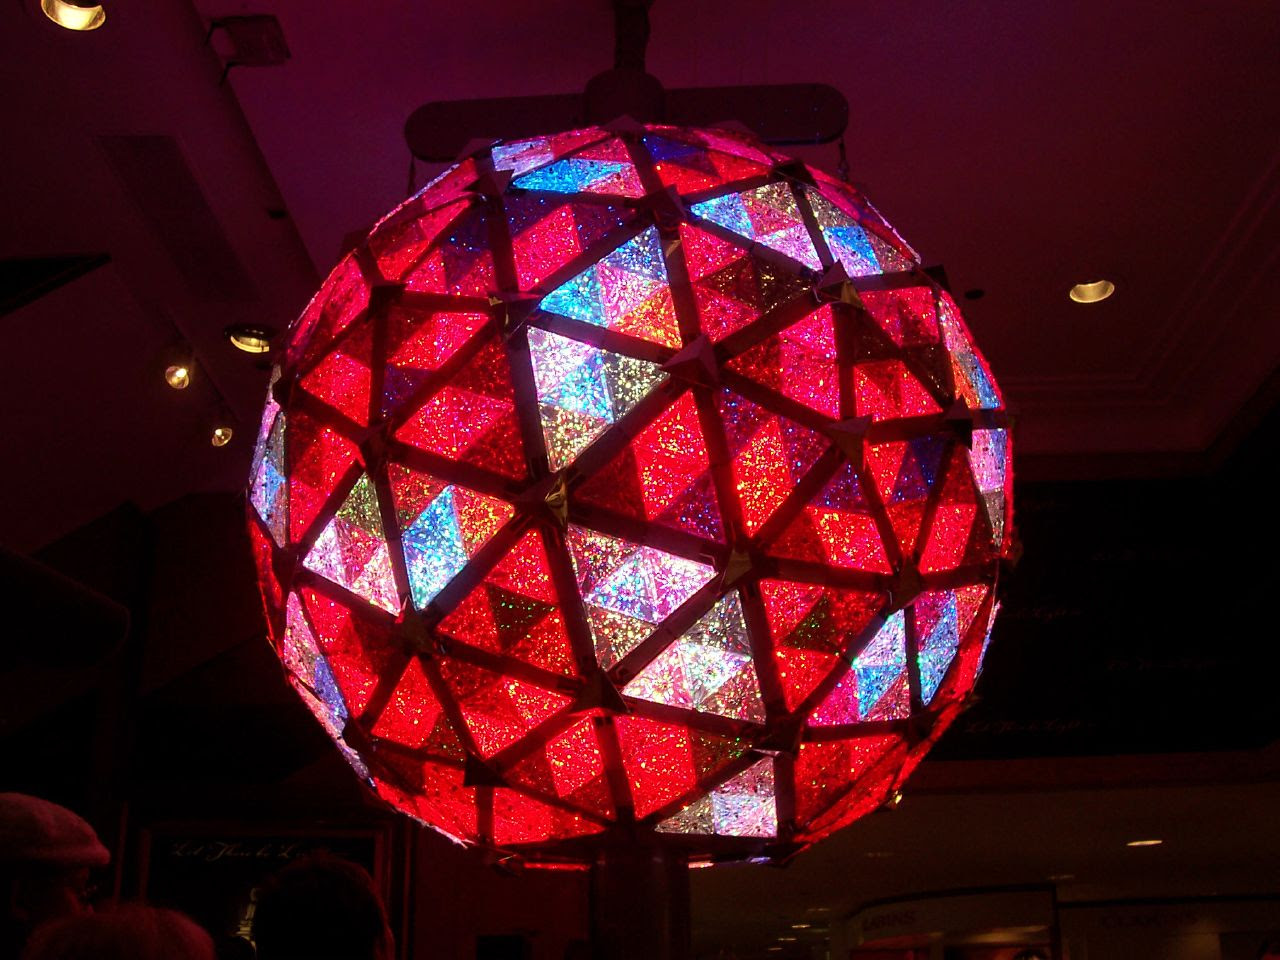 New Year's Eve Ball displayed at Macy's in NYC